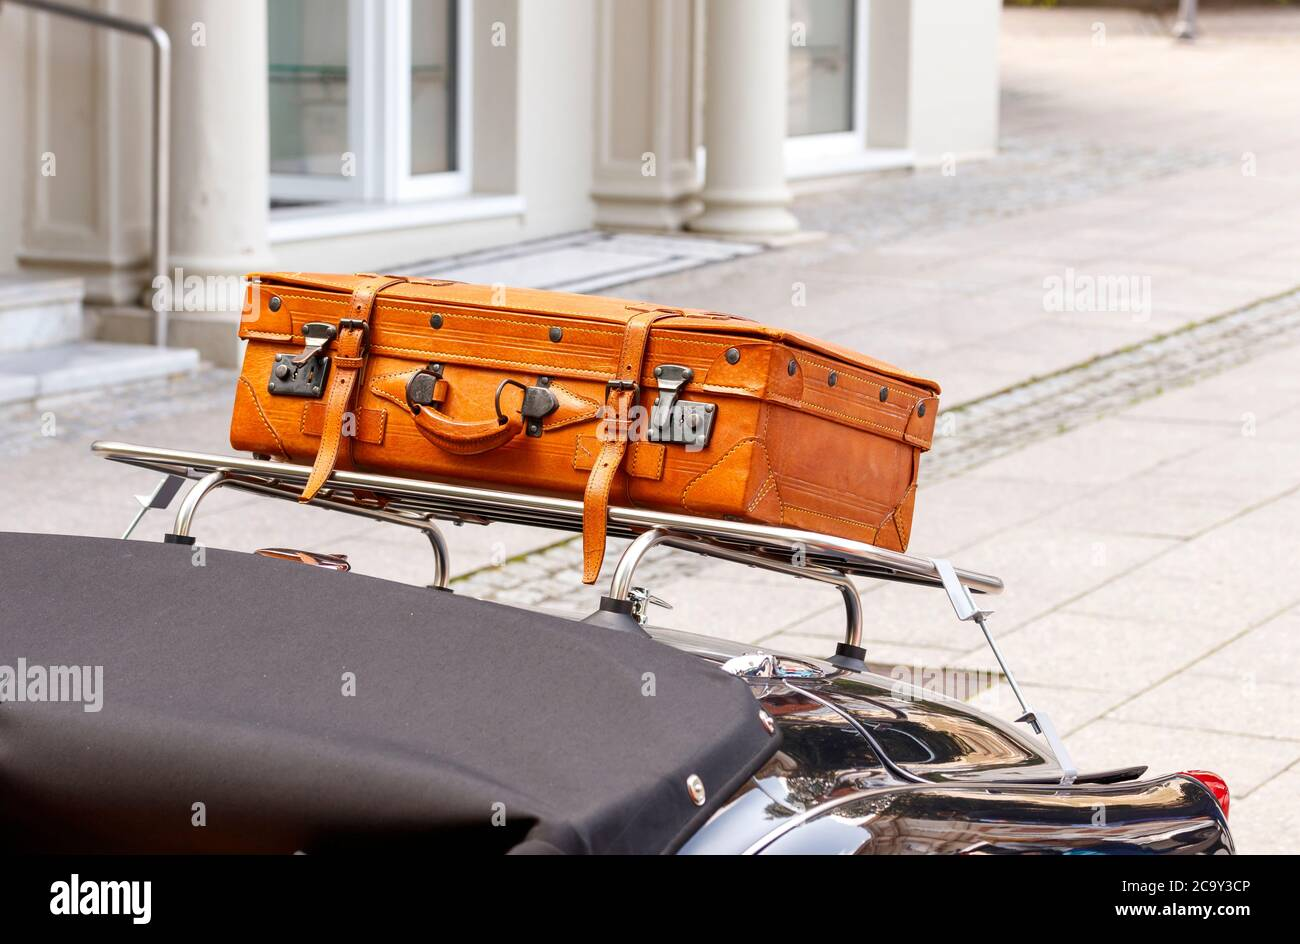 Leather suitcase on a luggage rack Stock Photo